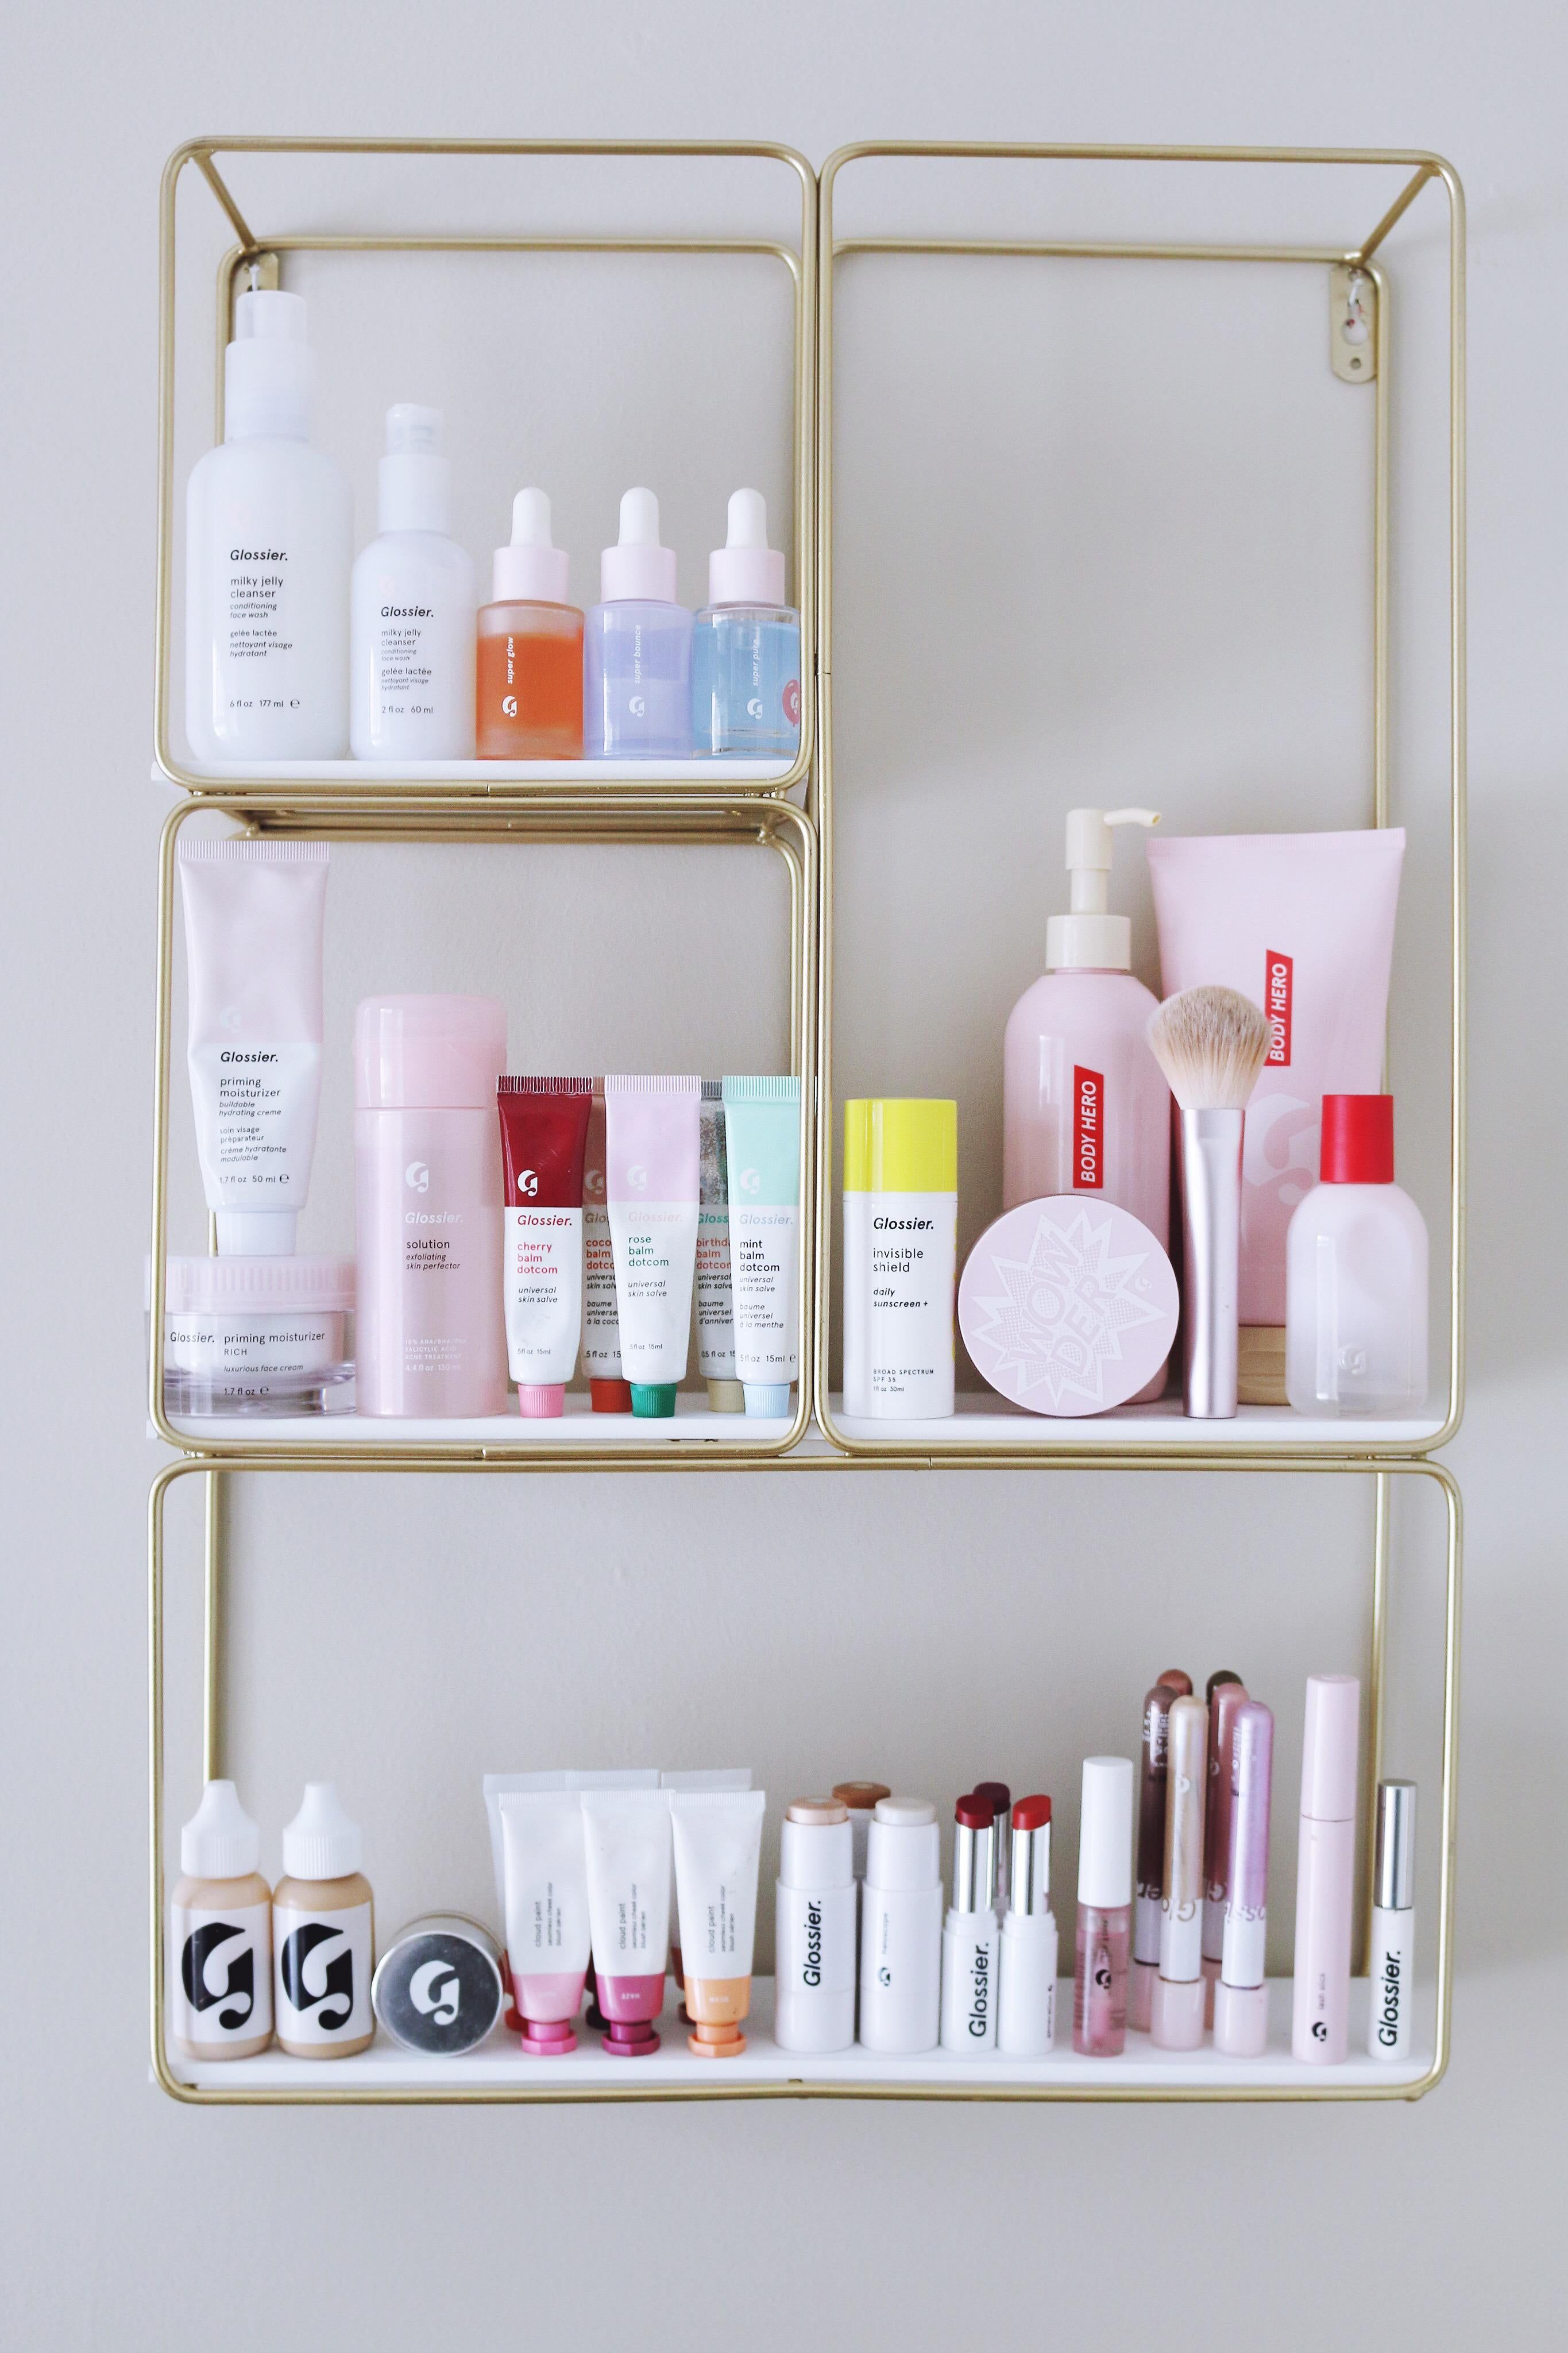 Https Www Reddit Com R Glossier Comments Ehgqw0 My Glossier Shelfie Best Glossier Products Glossy Makeup Makeup Salon